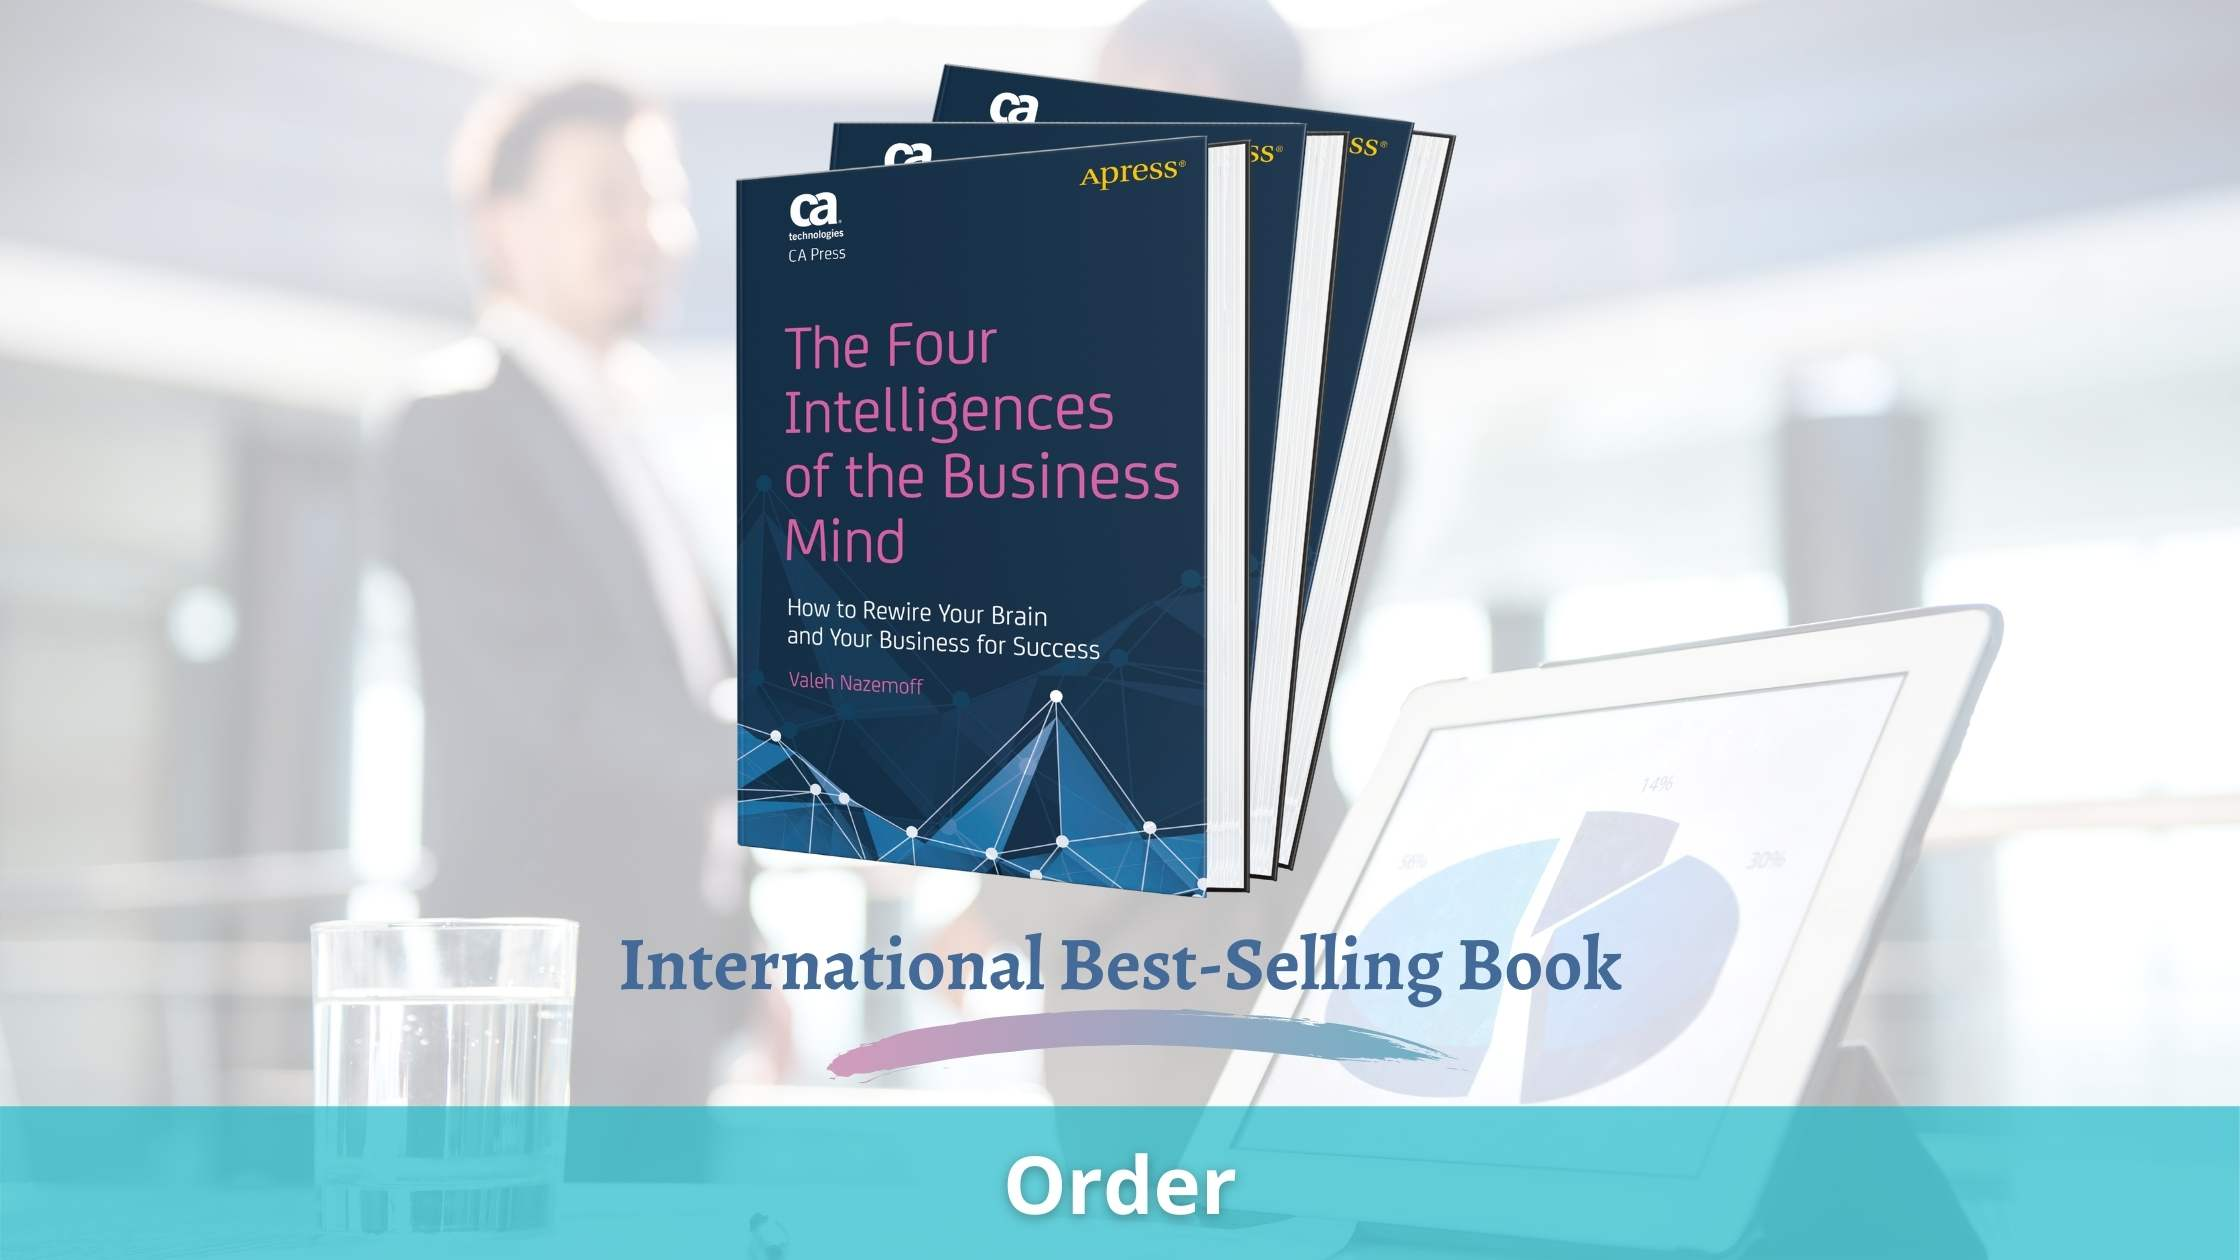 NY Published Best-Selling Book - The Four Intelligences of the Business Mind